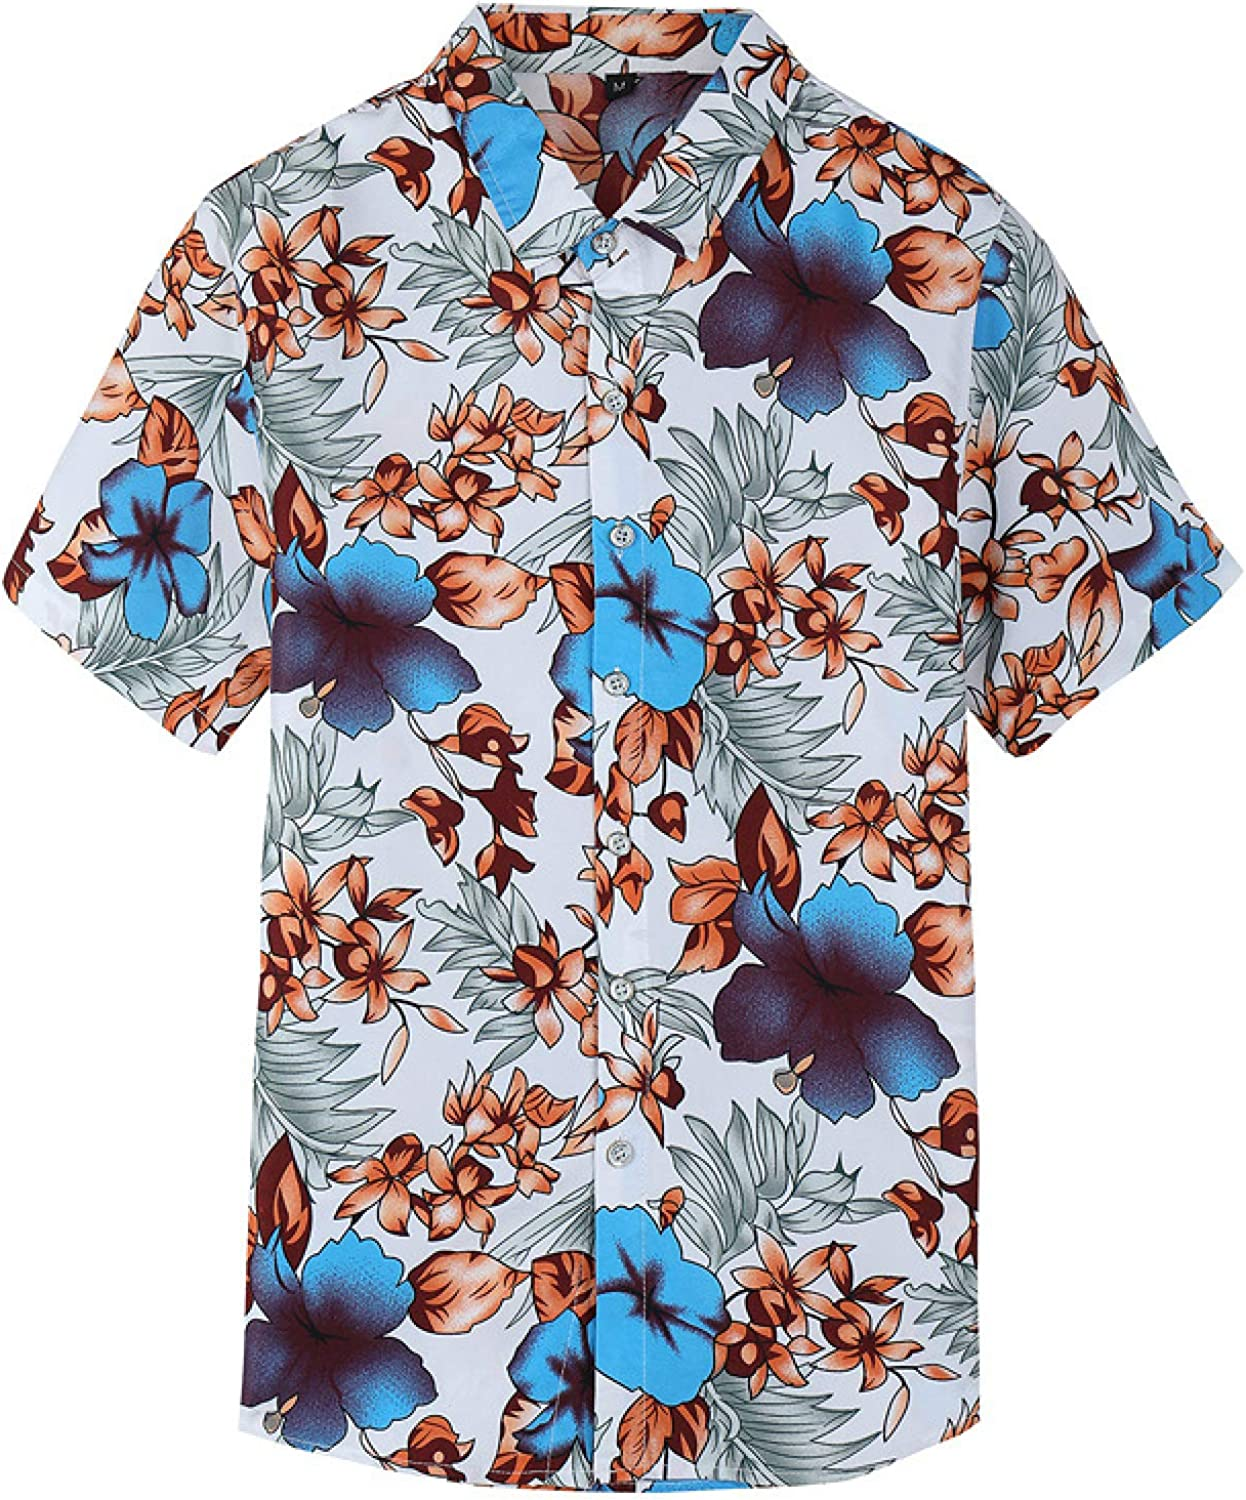 Luandge Men's Limited time sale Trendy Printed Flower La Shirts Streetwear Fixed price for sale Fashion